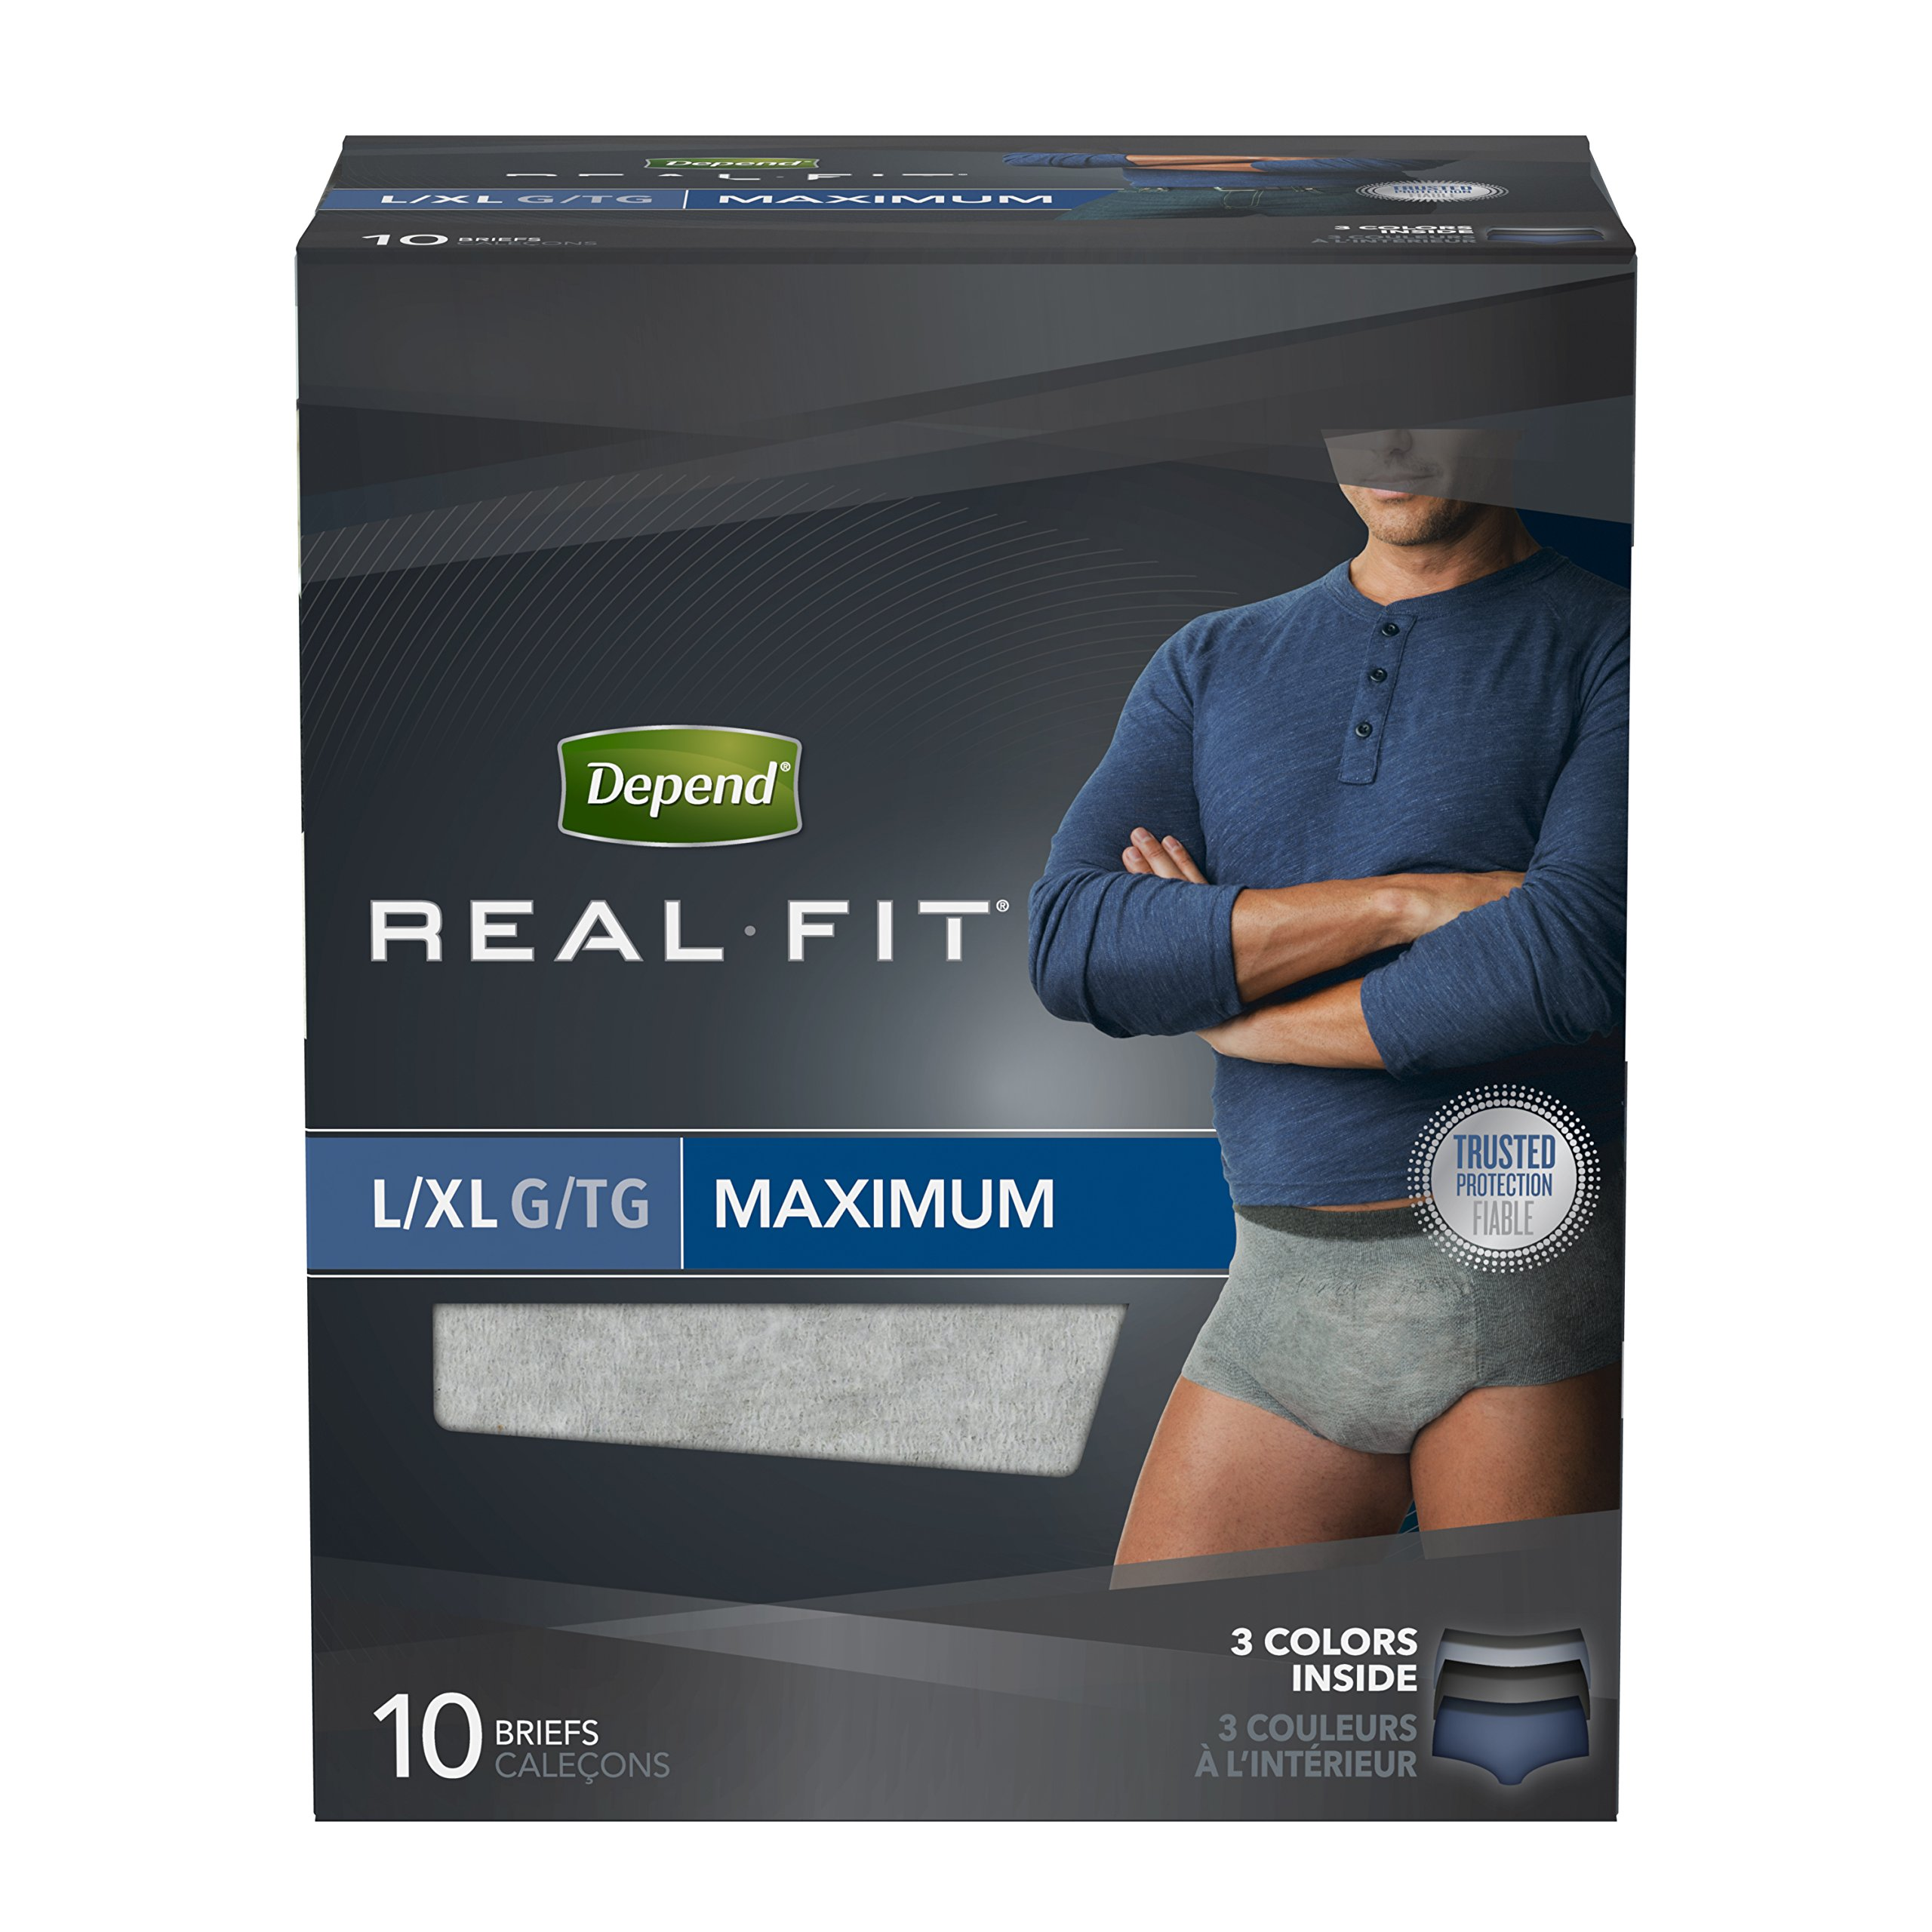 Depend Real Fit Incontinence Underwear for Men, Maximum Absorbency, L/XL (pack of 4)